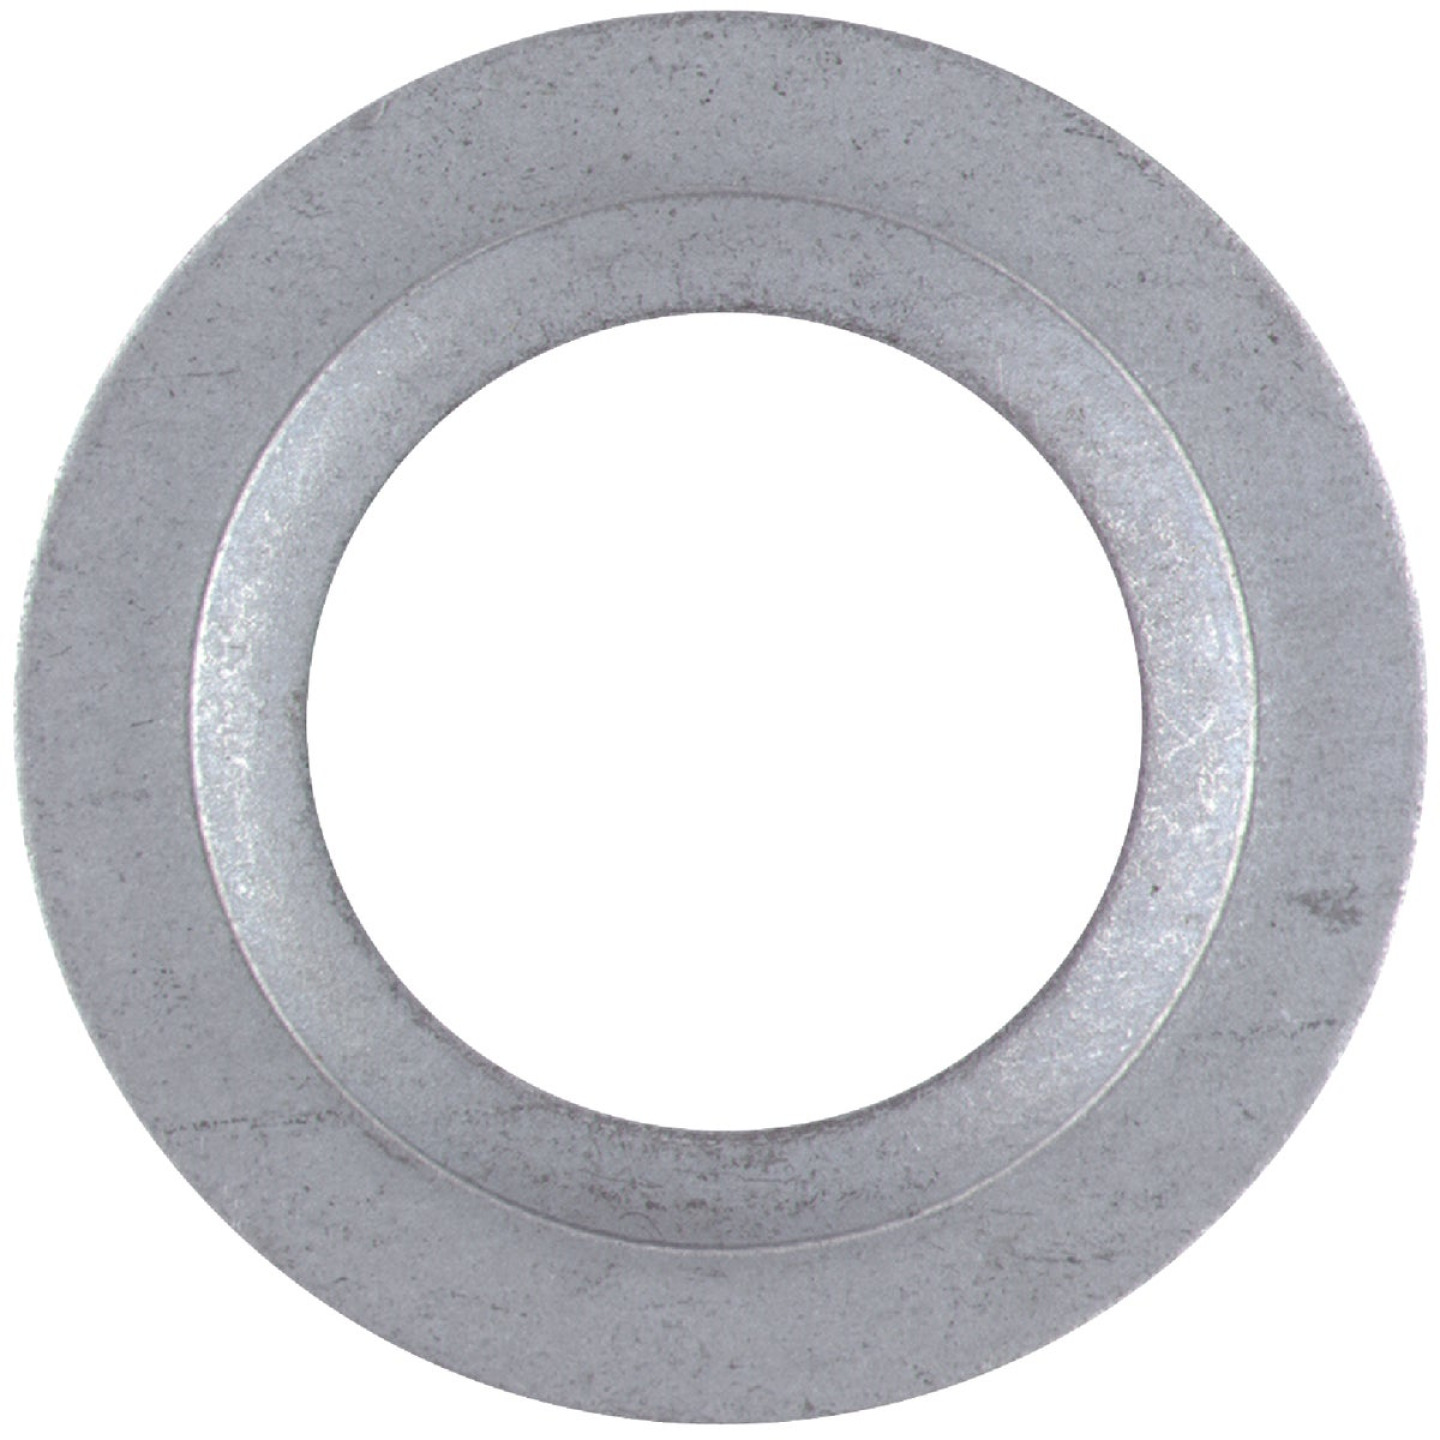 Halex 1-1/4 In. to 1 In. Plated Steel Rigid Reducing Washer (2-Pack) Image 1